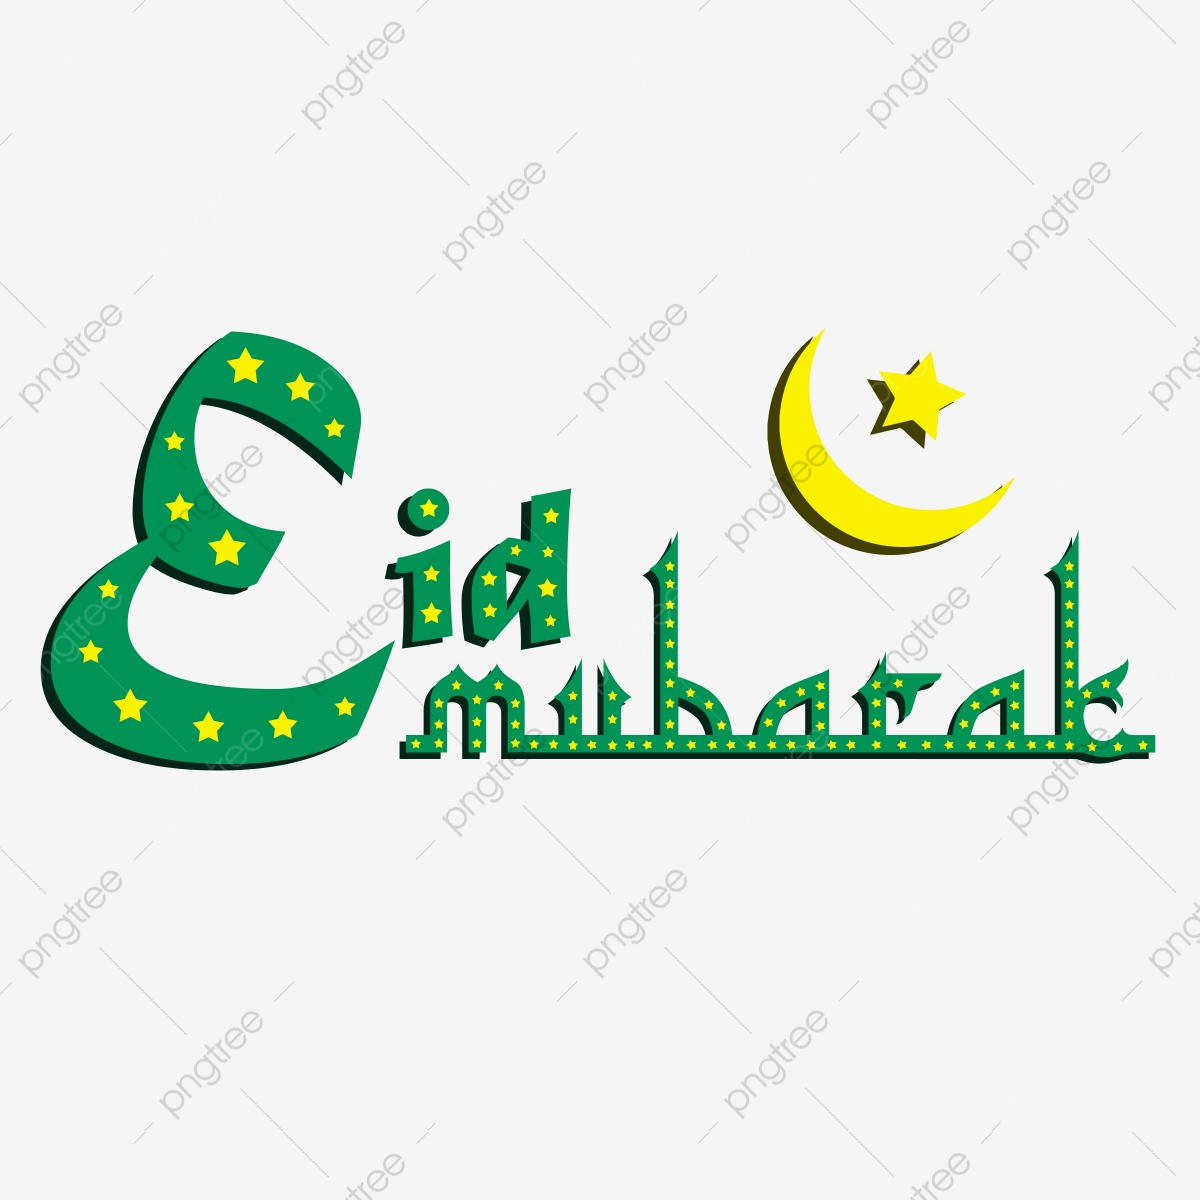 Eid Mubarak Text Design Abstract Allah Arab Png Transparent Clipart Image And Psd File For Free Download